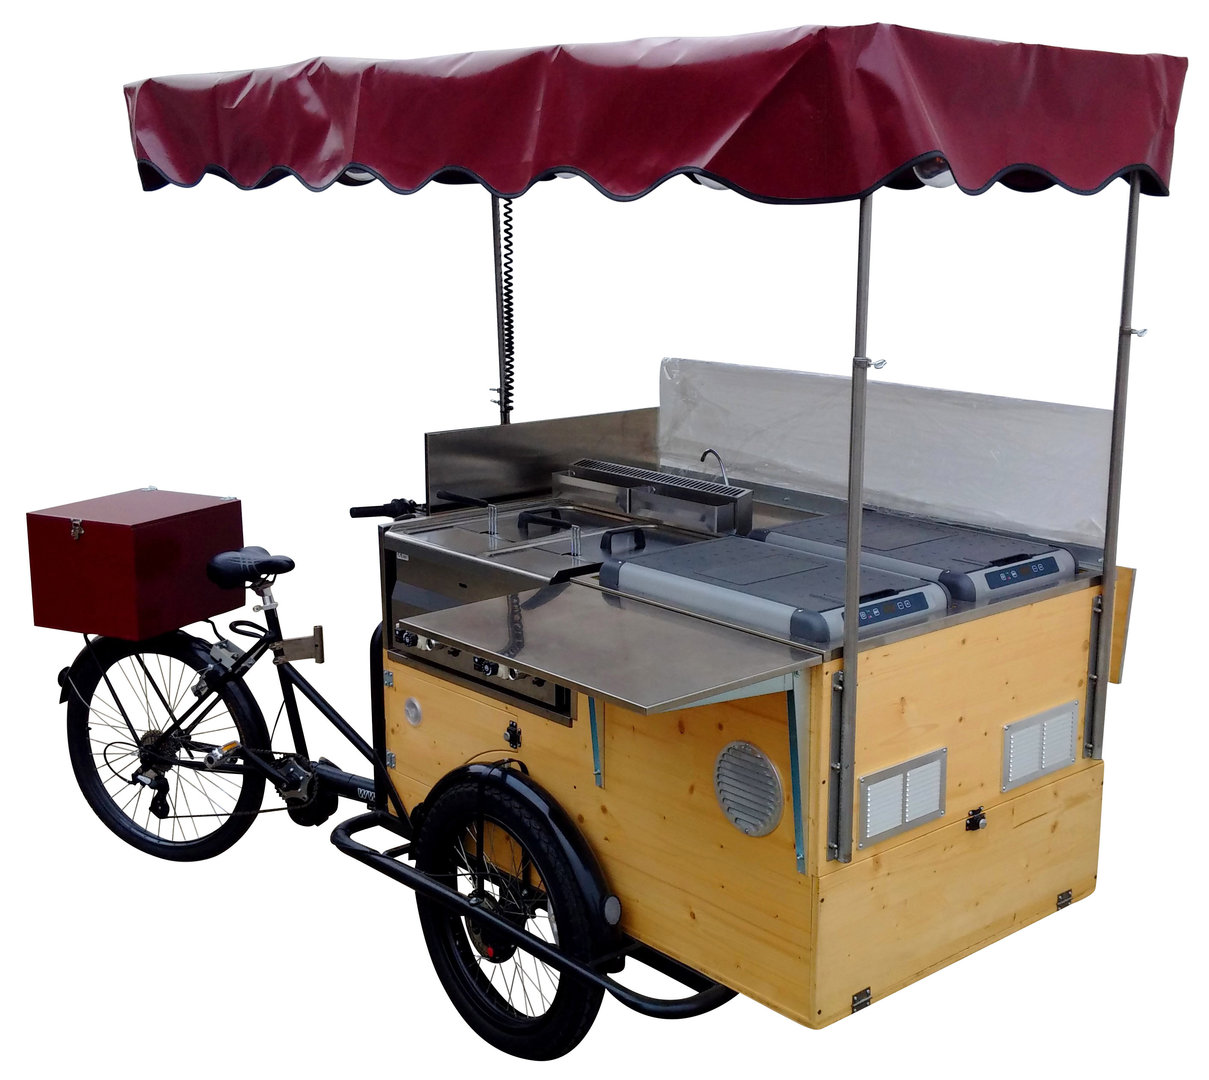 STREET FOOD BIKE QUADRA WOODEN BASIC